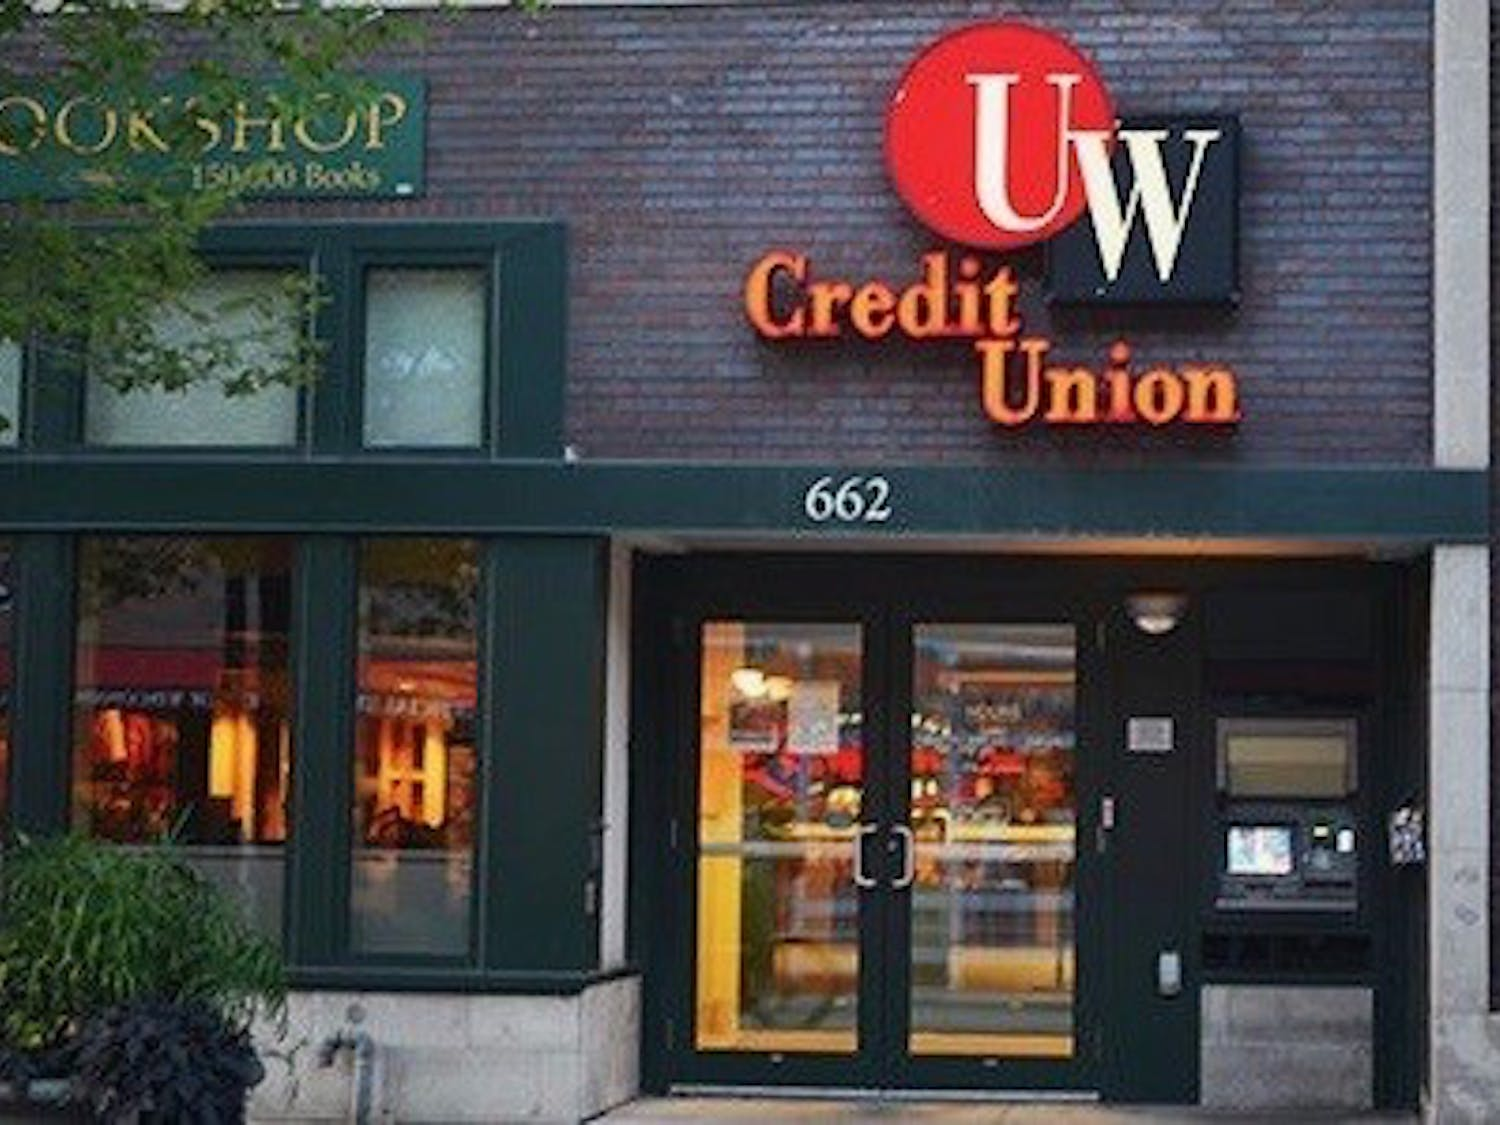 UW Credit Union contributes to scholarship fund that assists students who may not be able to financially assist themselves.